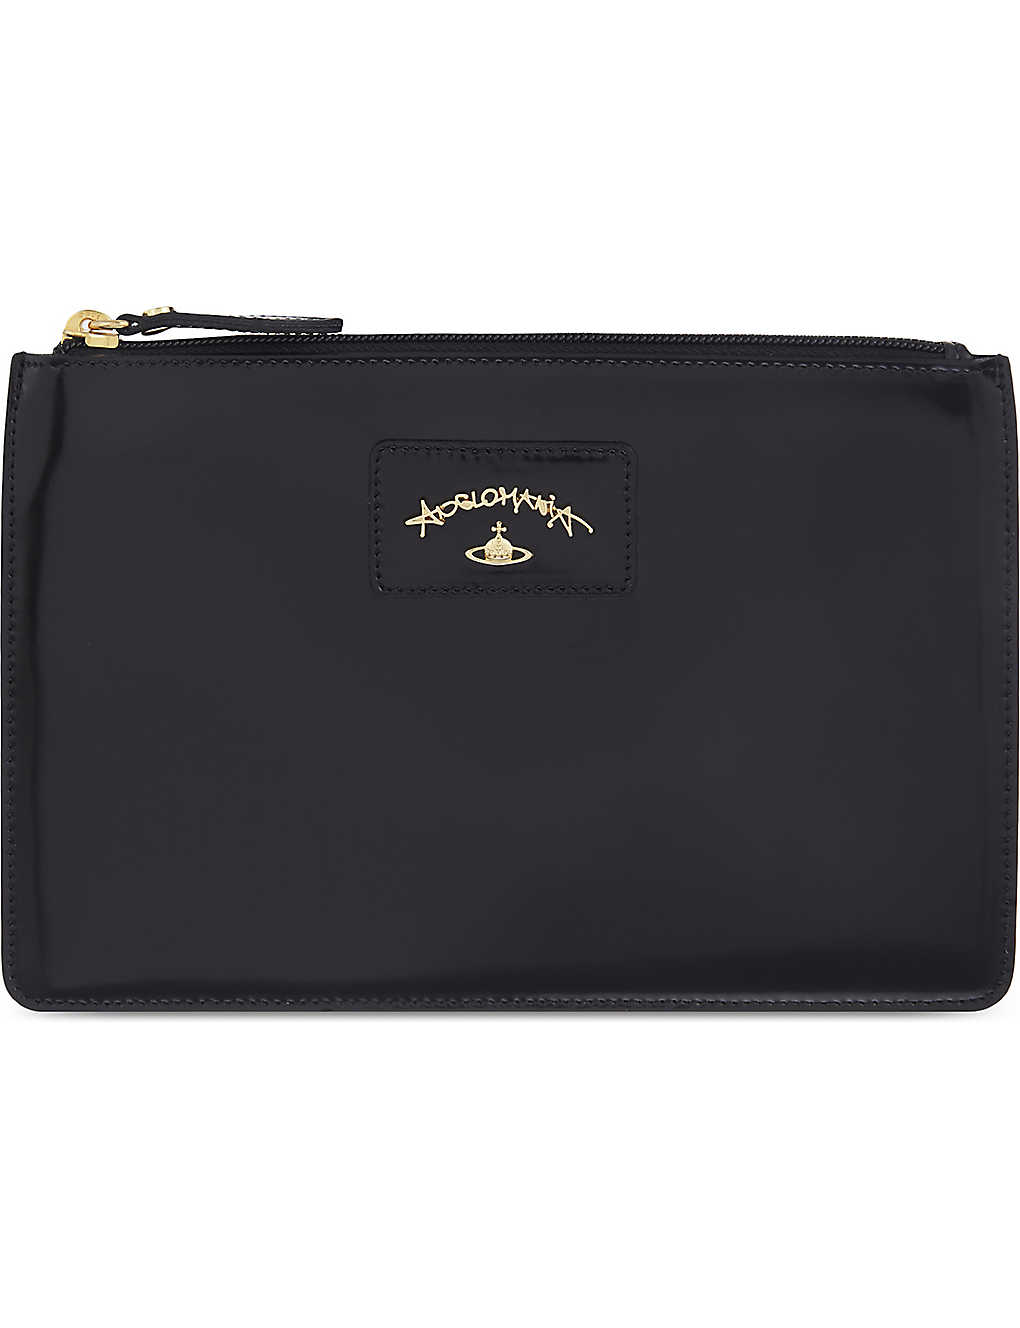 87f0fdfe8b6 VIVIENNE WESTWOOD - Anglomania Newcastle leather pouch | Selfridges.com